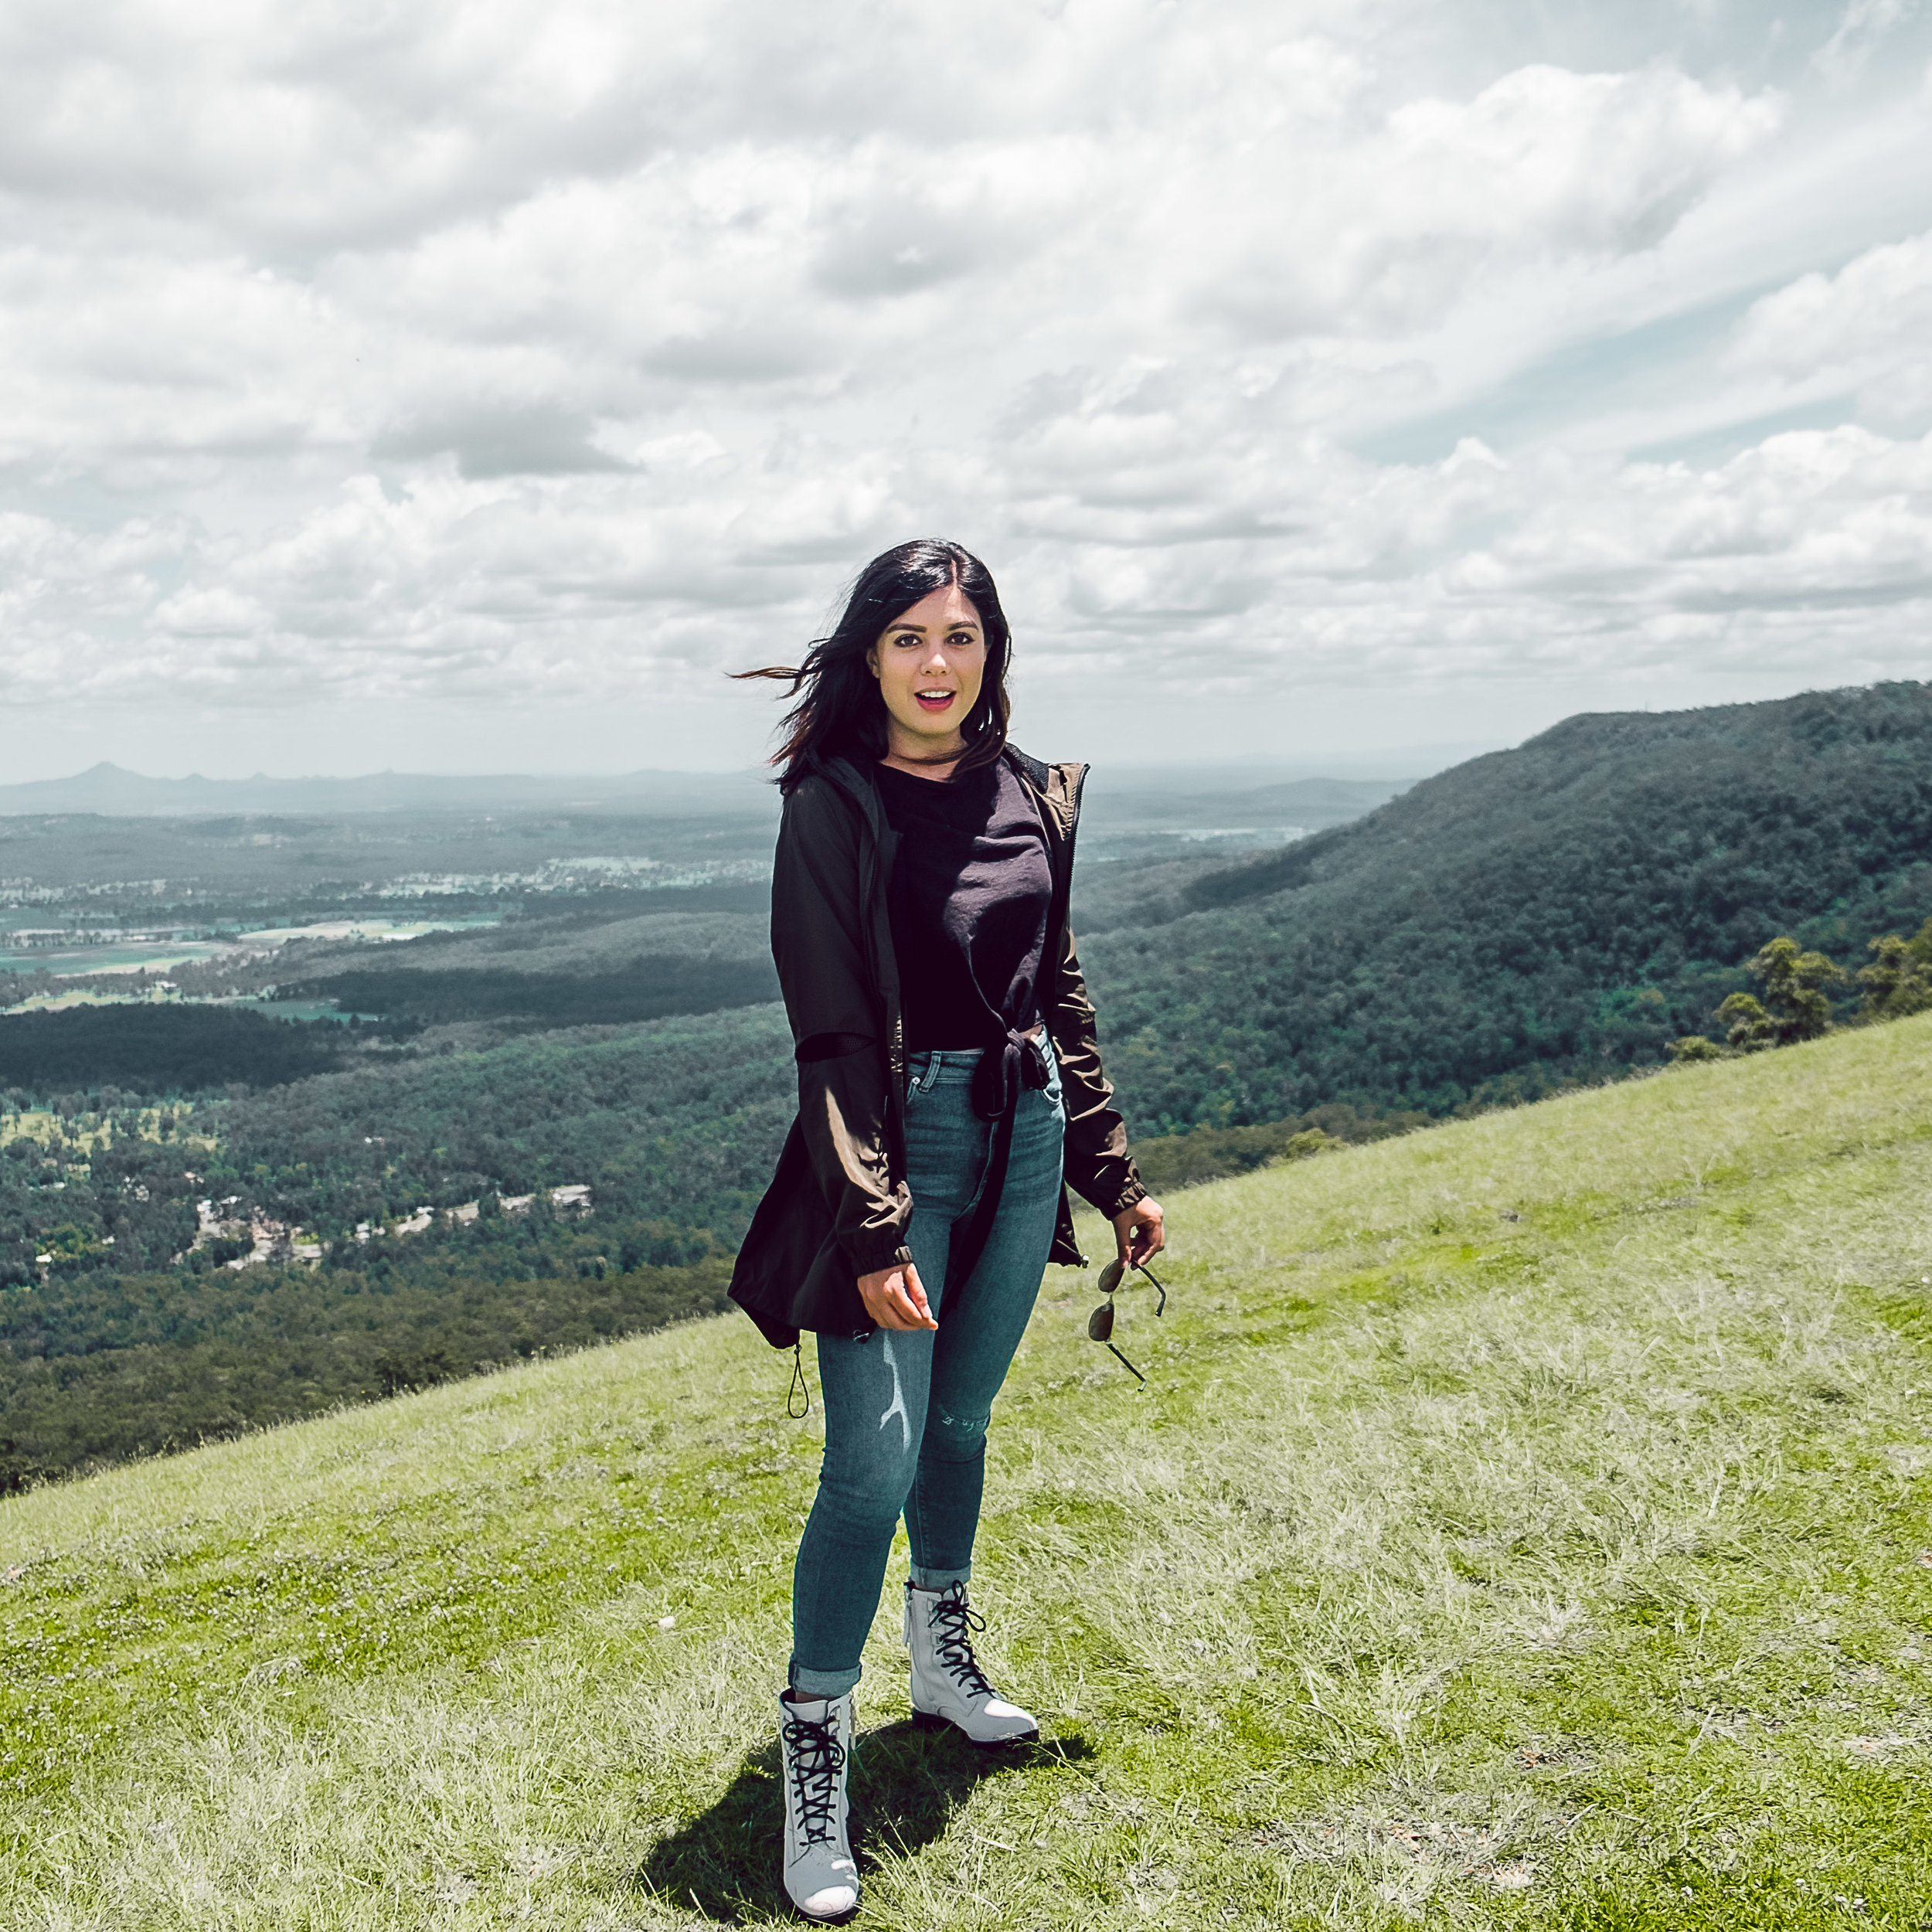 Rachel Off Duty: How to Choose Stylish and Function Outdoor Gear - Dick's Sporting Goods